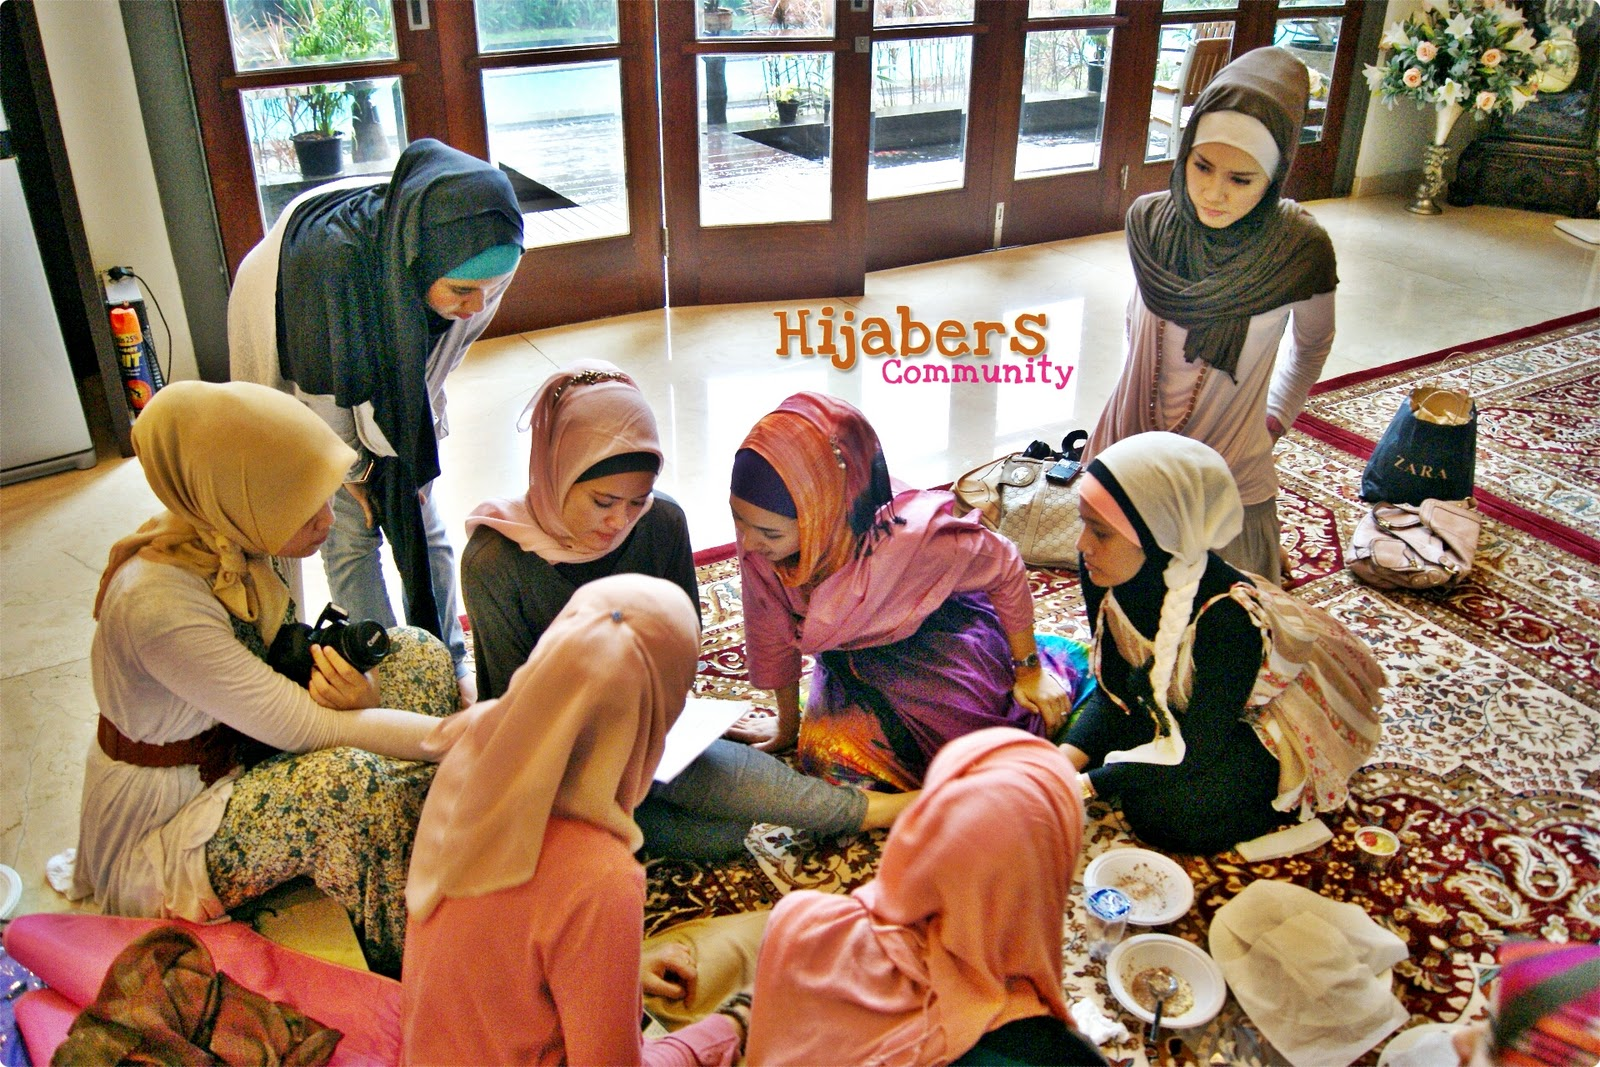 Hijabers Community: How Did We Start?